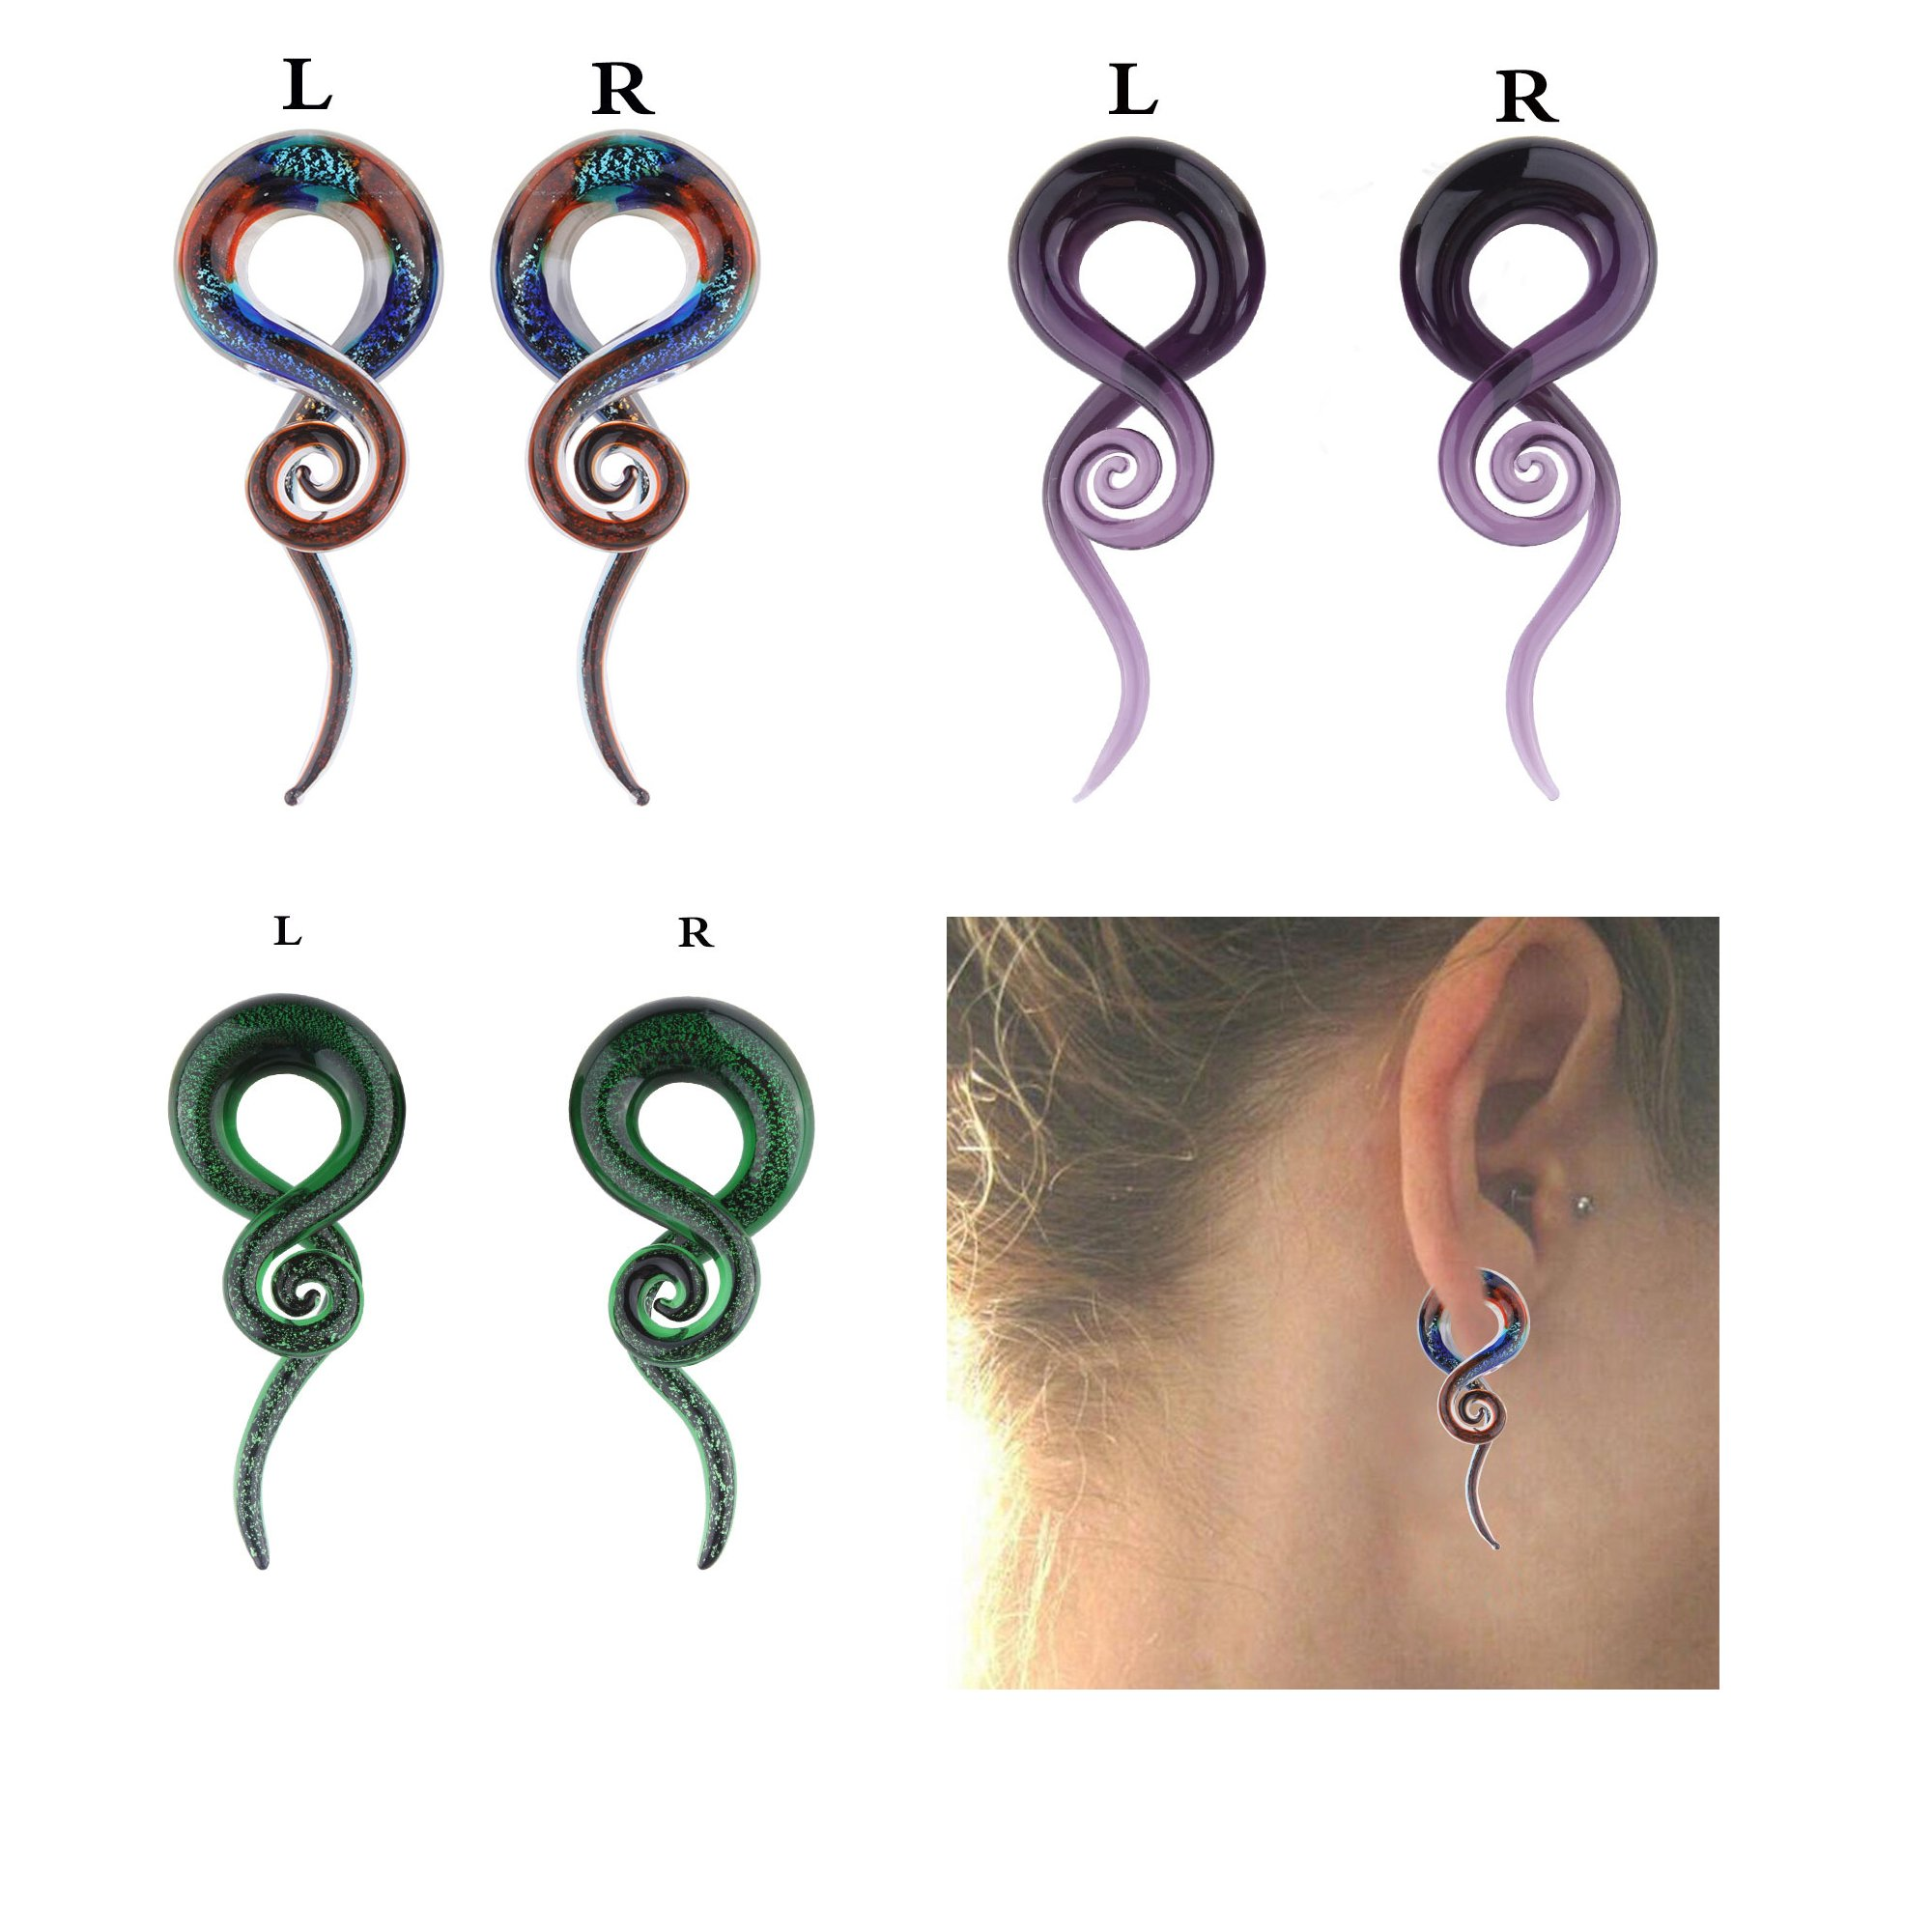 3 Pairs Glass Ear Spiral Taper Plugs Ear Expander Ear Piercing Tunnel Plugs Gauges (5mm=4G)